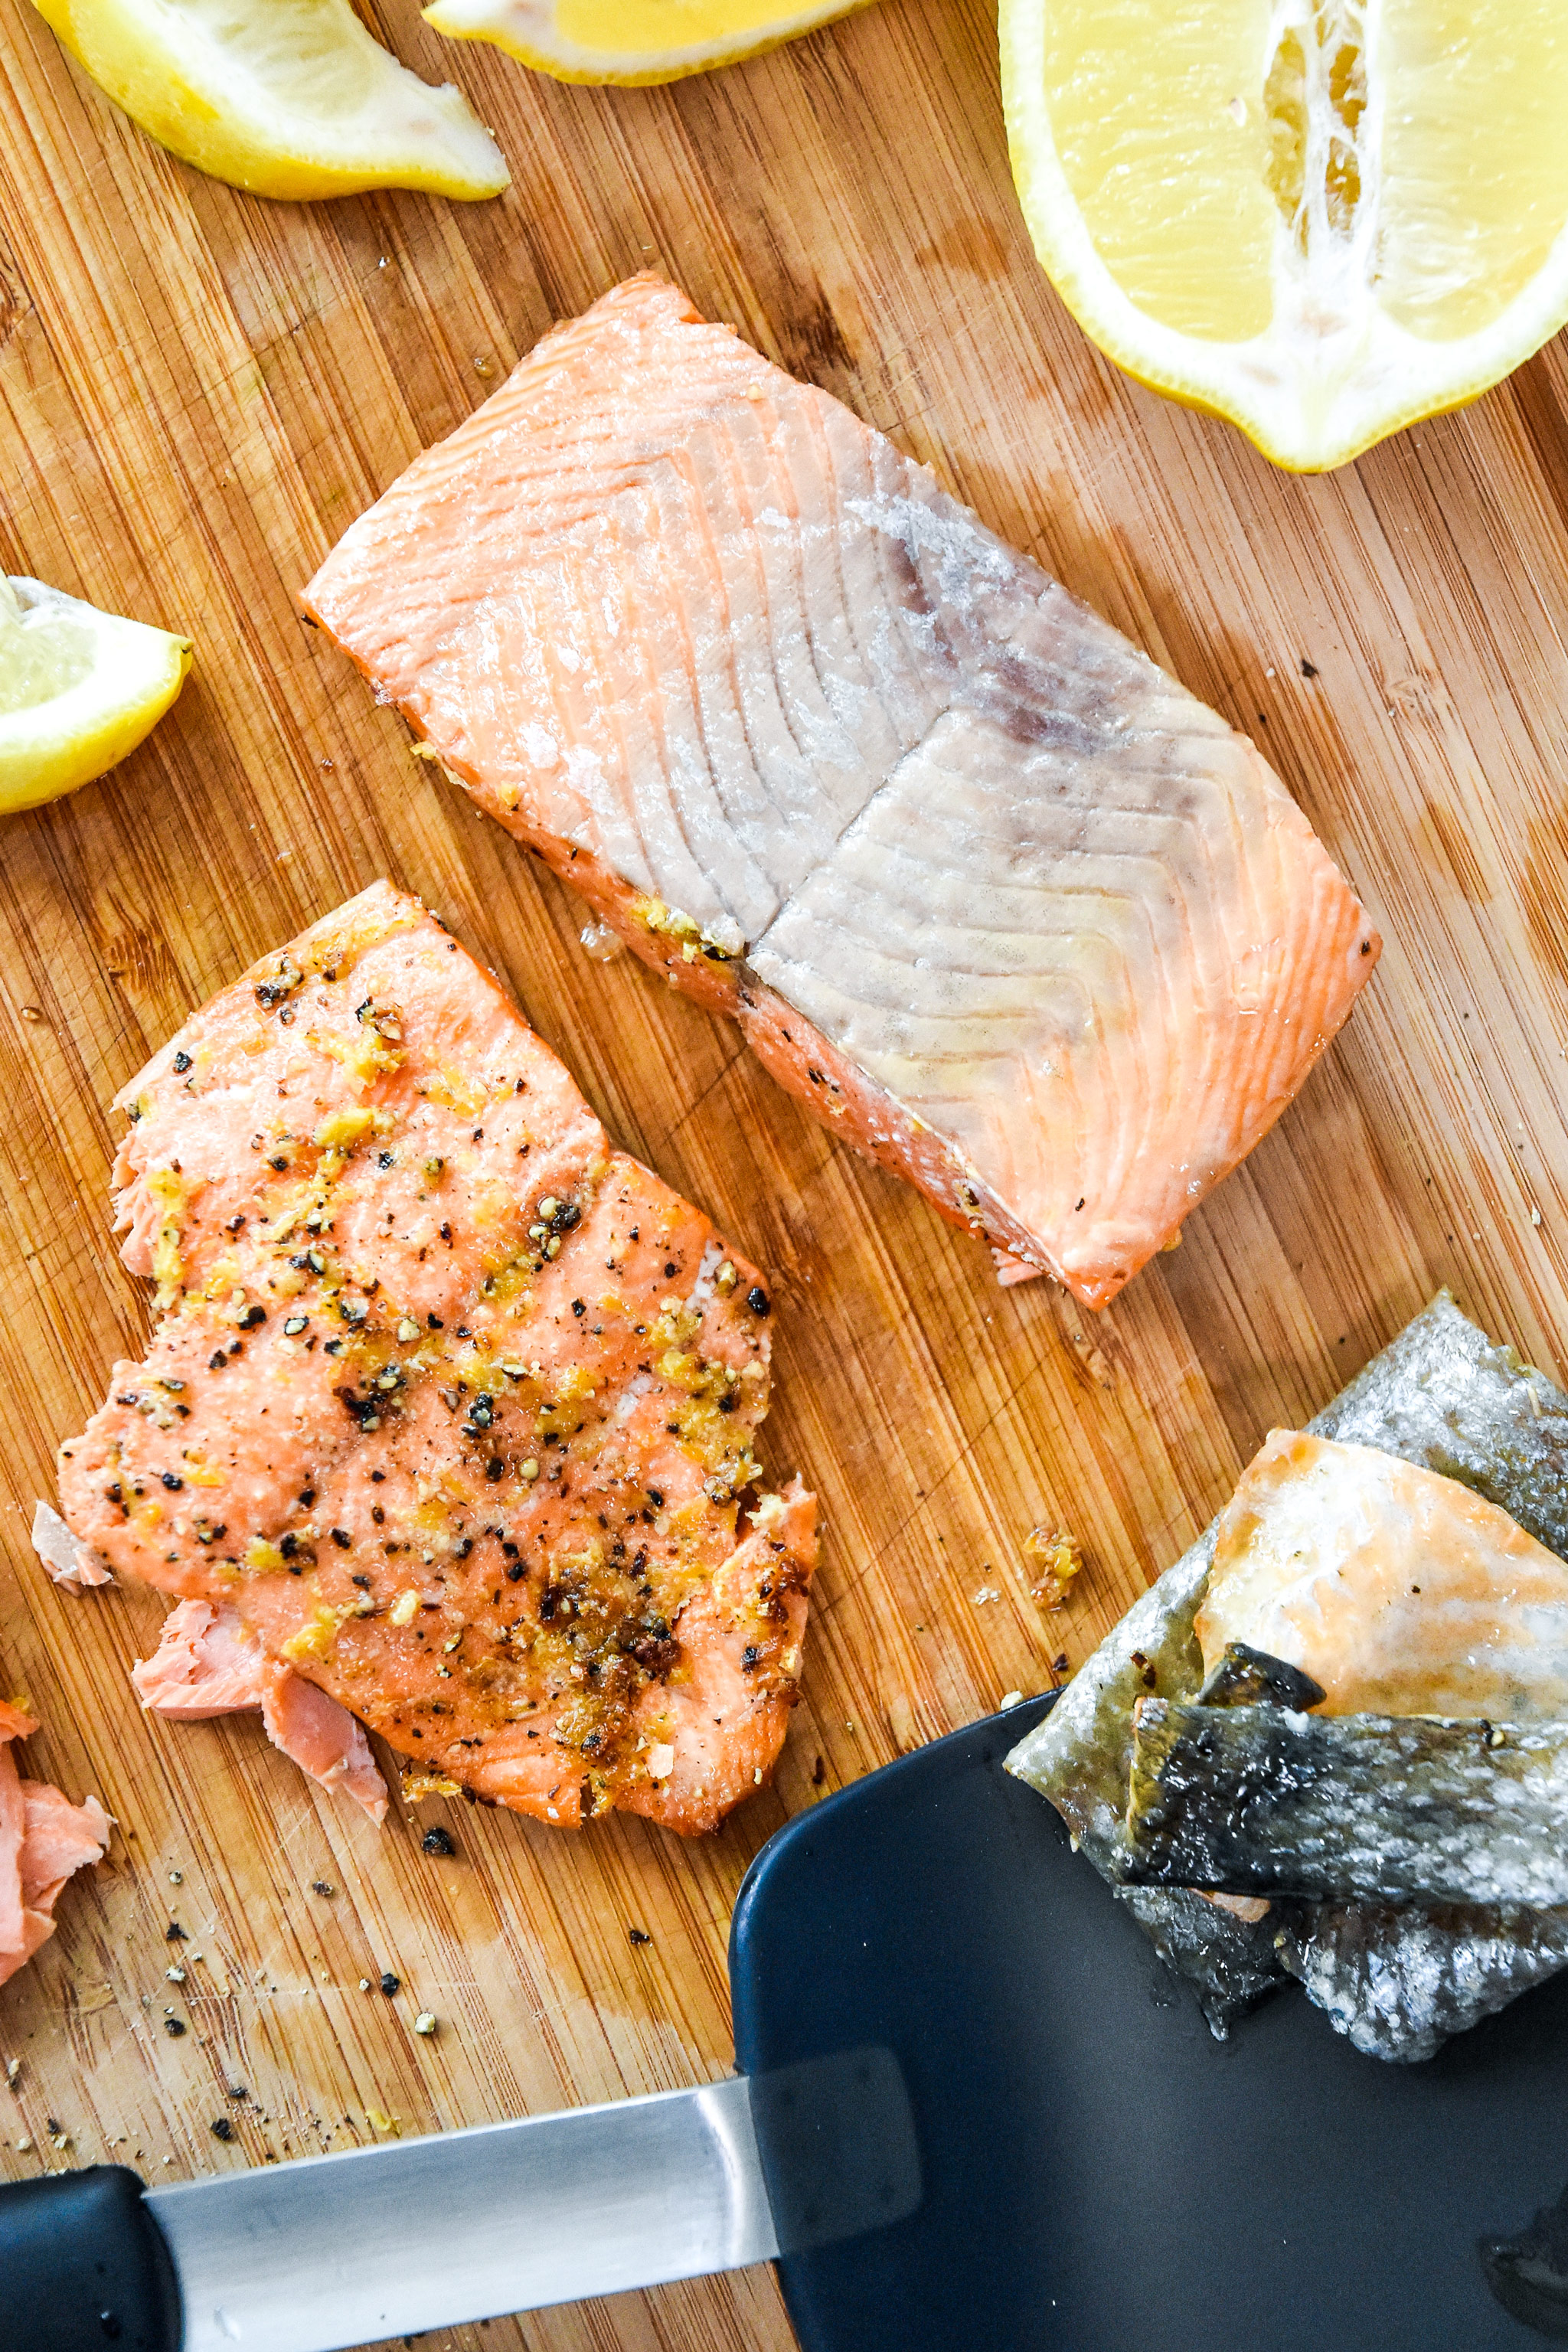 easily remove the skin from the cooked air fryer lemon pepper salmon.